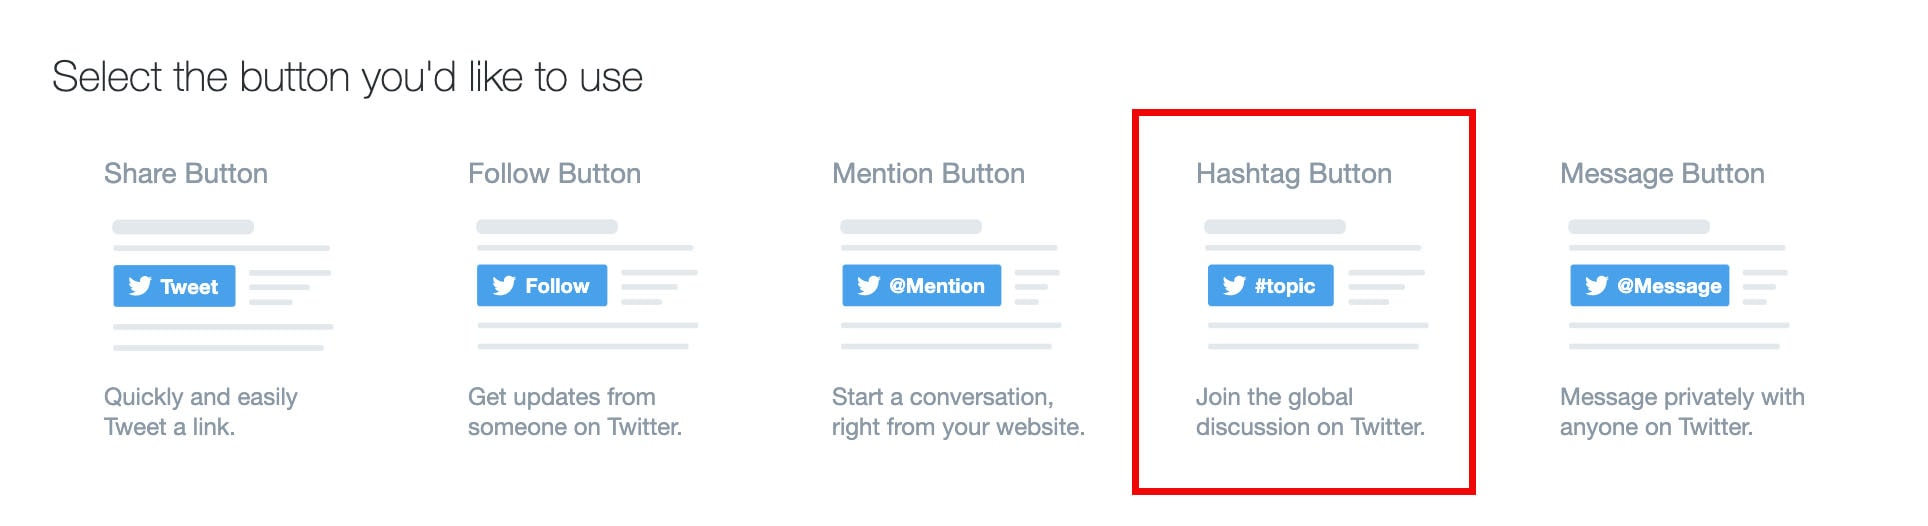 hashtag button on twitter developer page